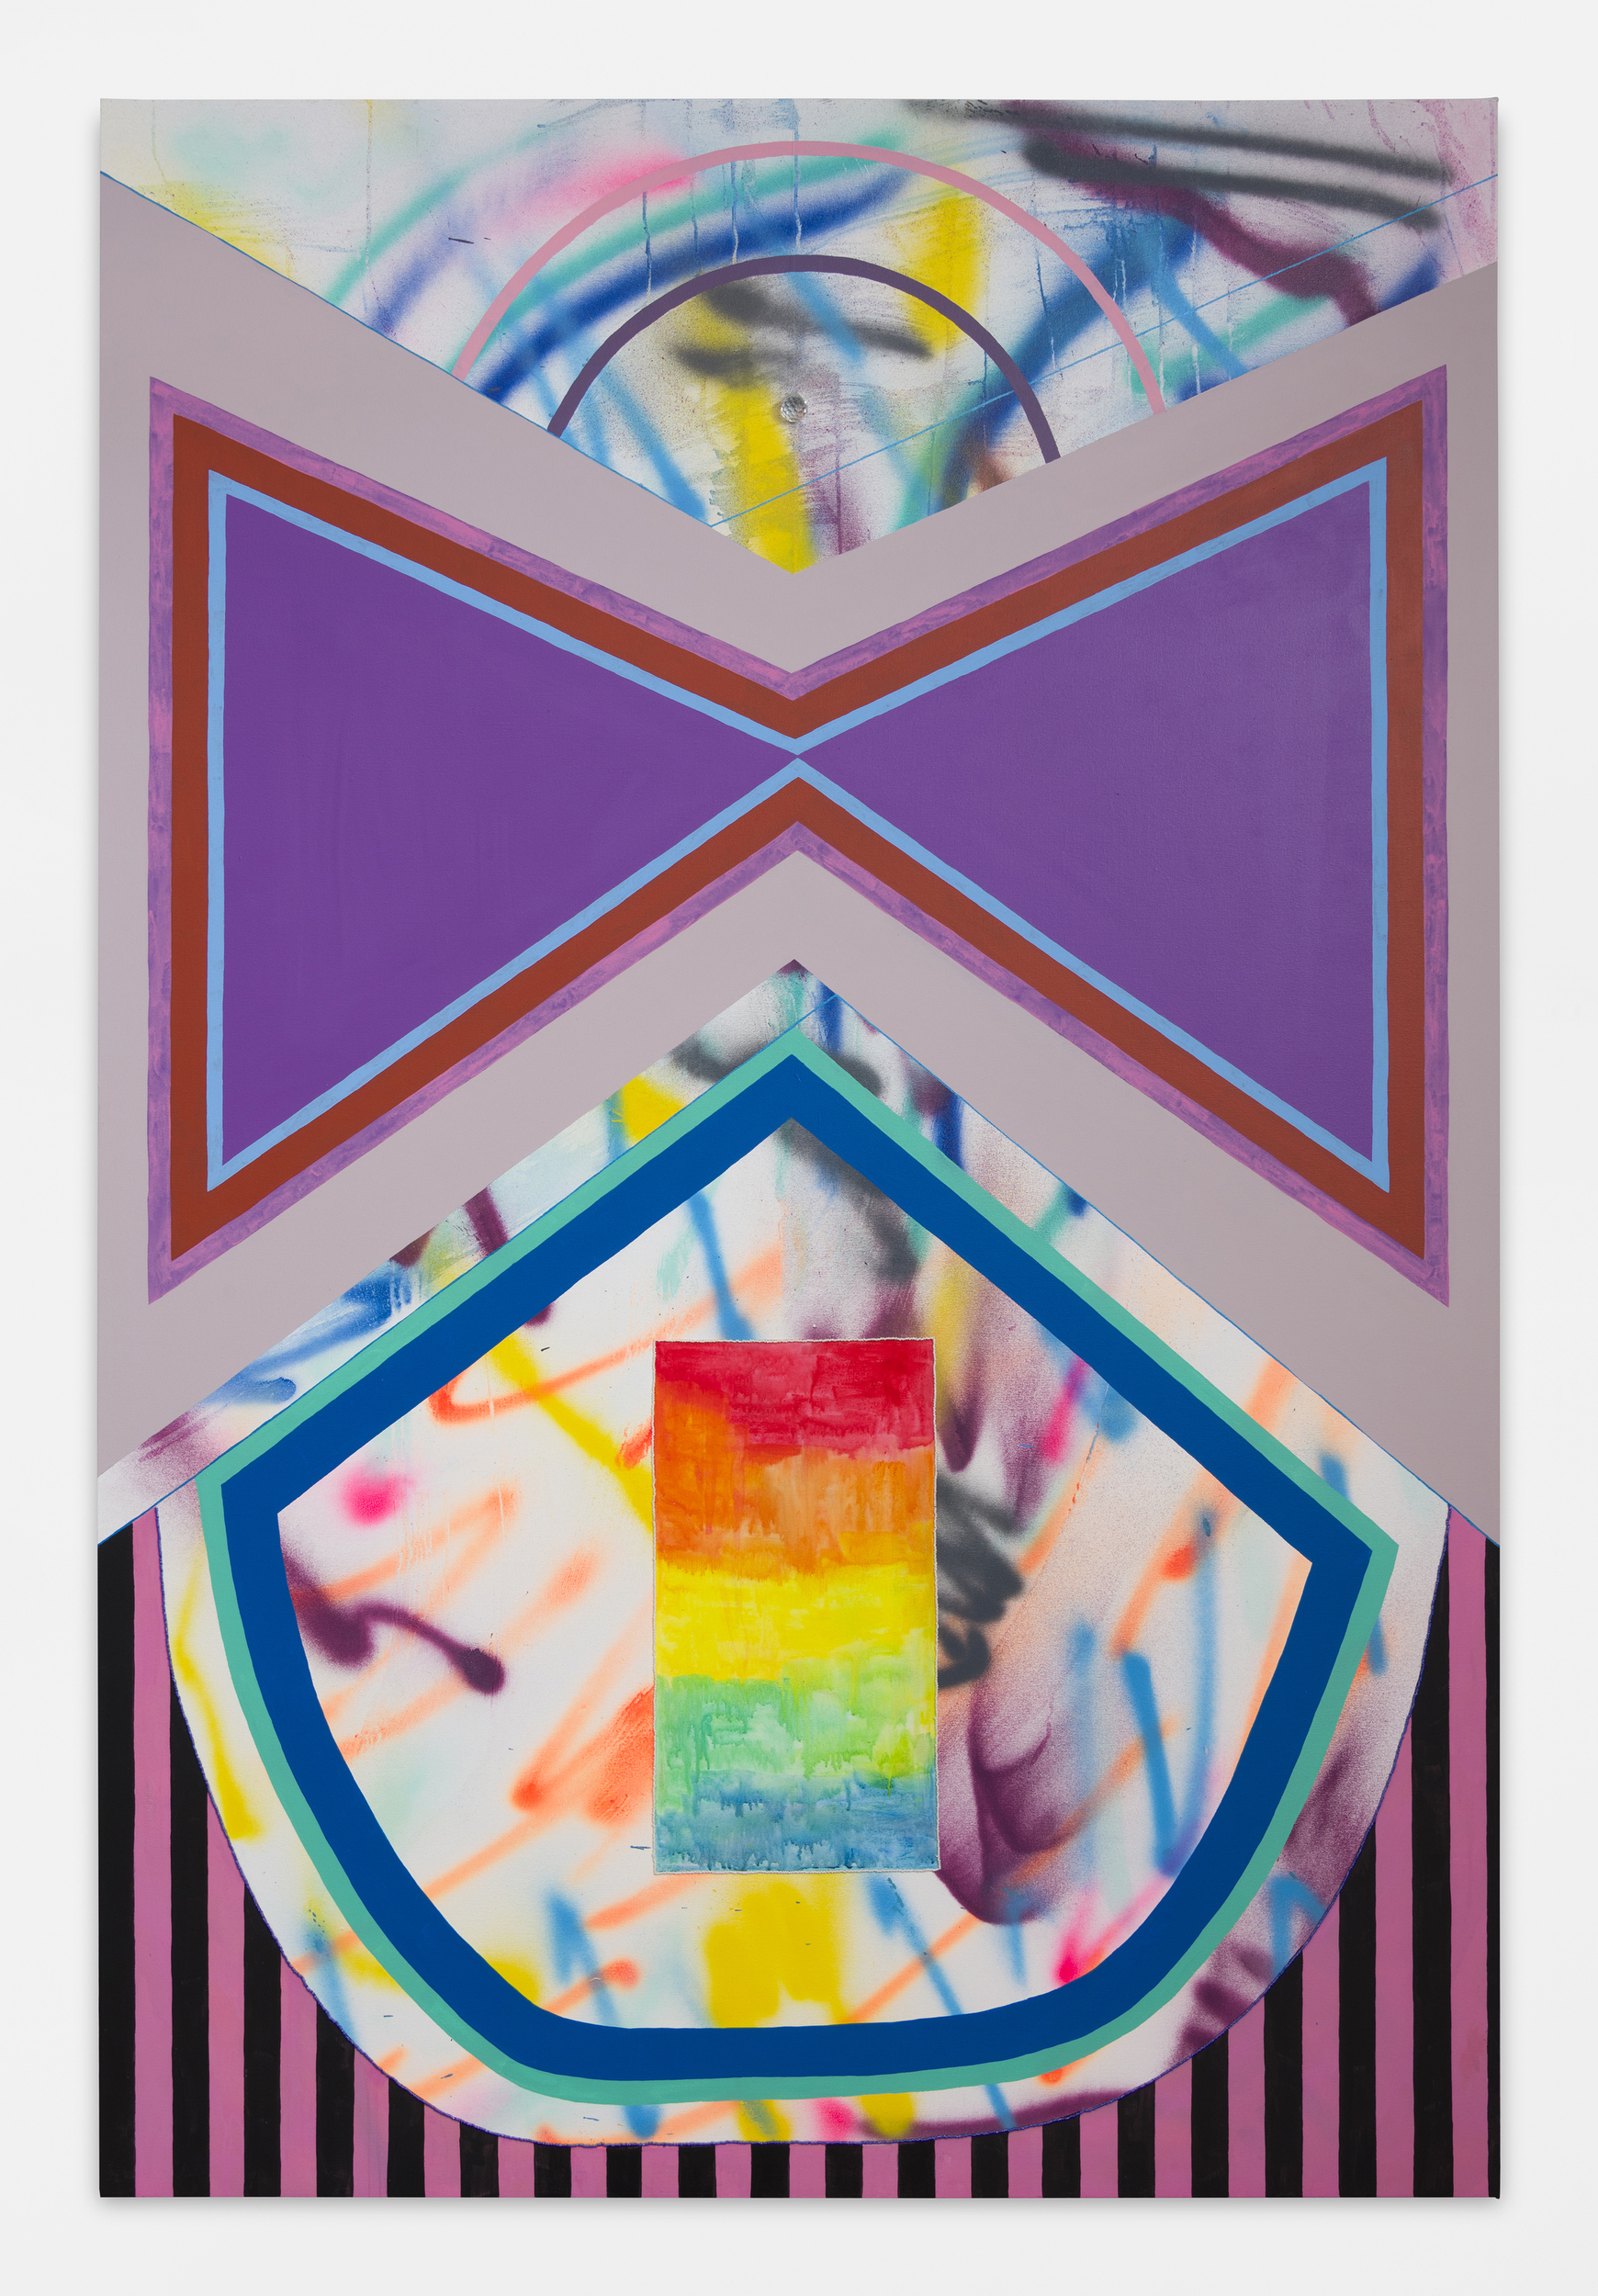 Sarah Cain   Black Widow , 2018 Acrylic, beads, gouache and prism on canvas 90 x 60 in 228.6 x 152.4 cm. Courtesy of the artist/Timothy Taylor Gallery.